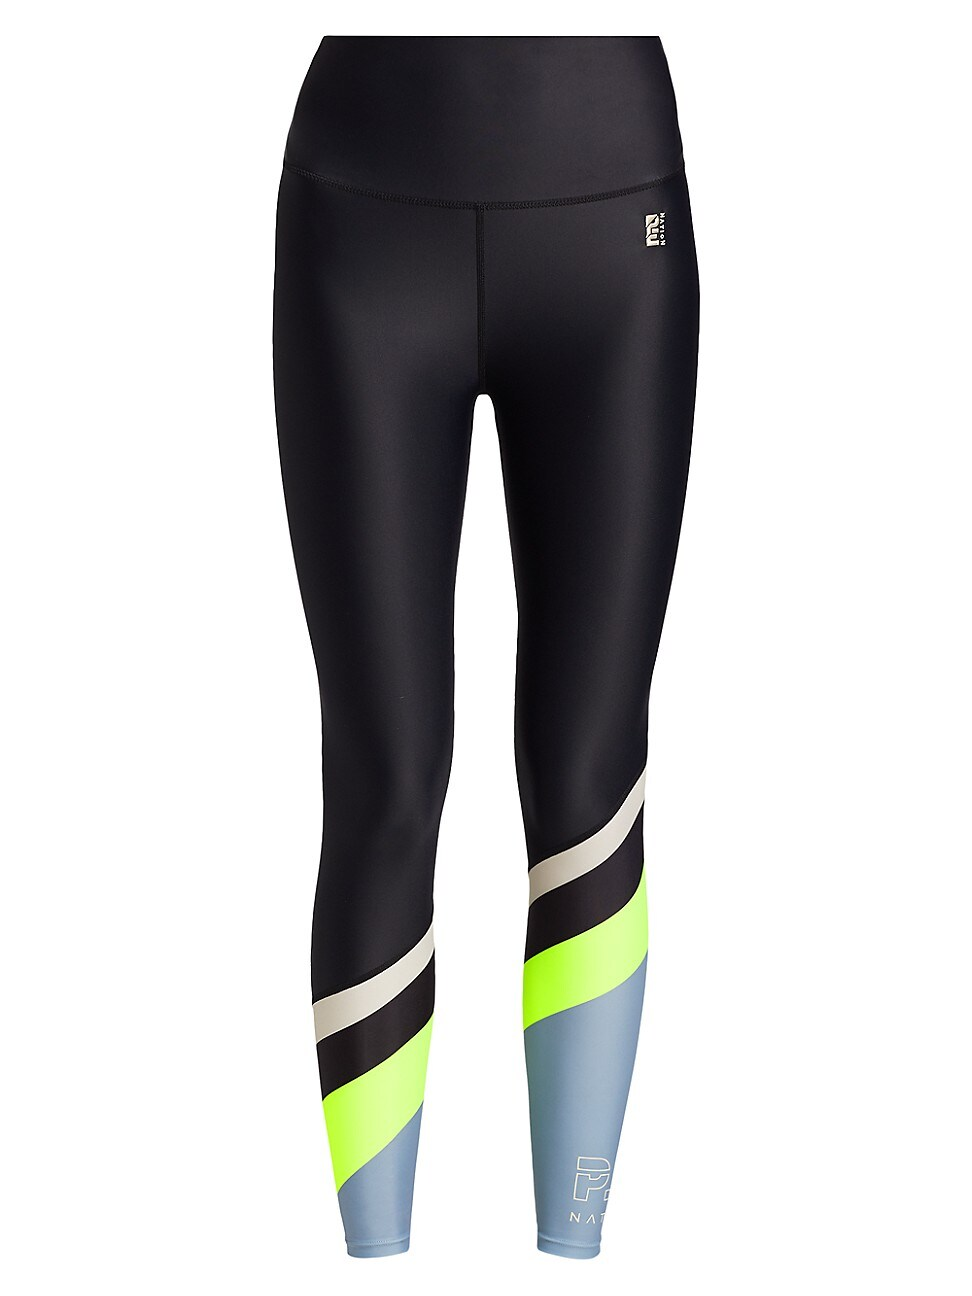 P.e Nation WOMEN'S FIRST POSITION LEGGINGS